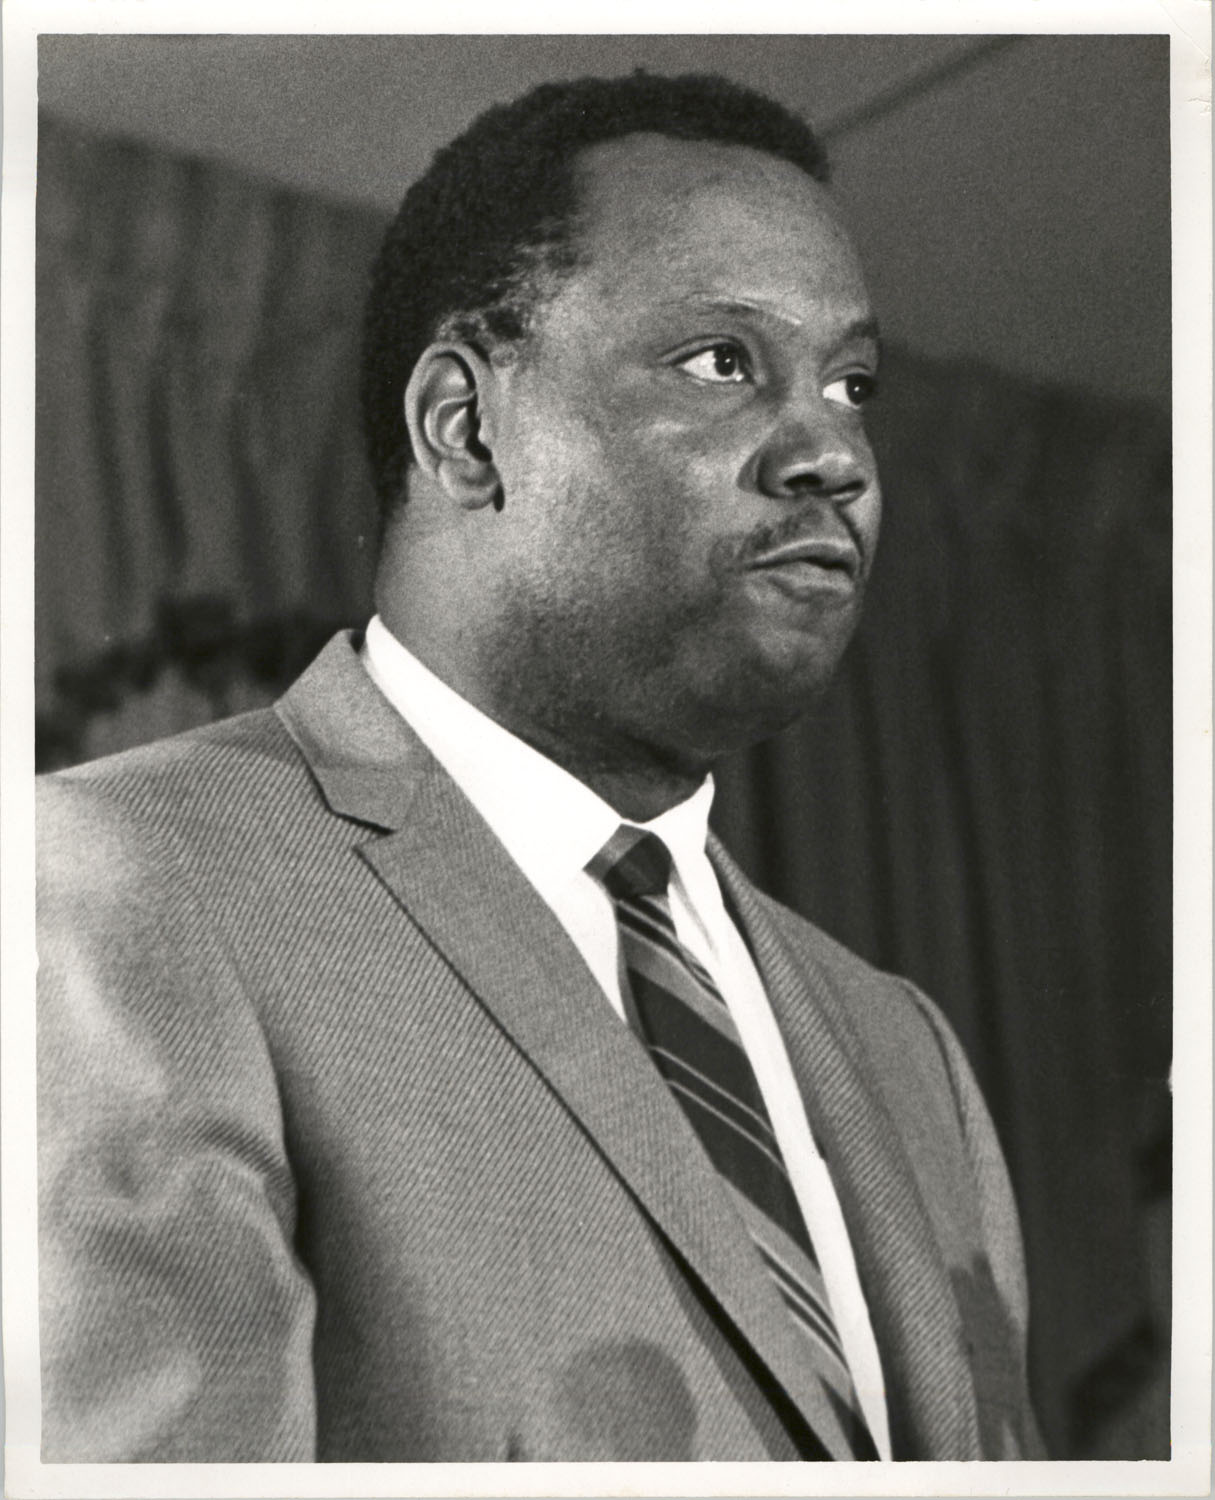 Southern Christian Leadership Conference Staff Worker, 1970